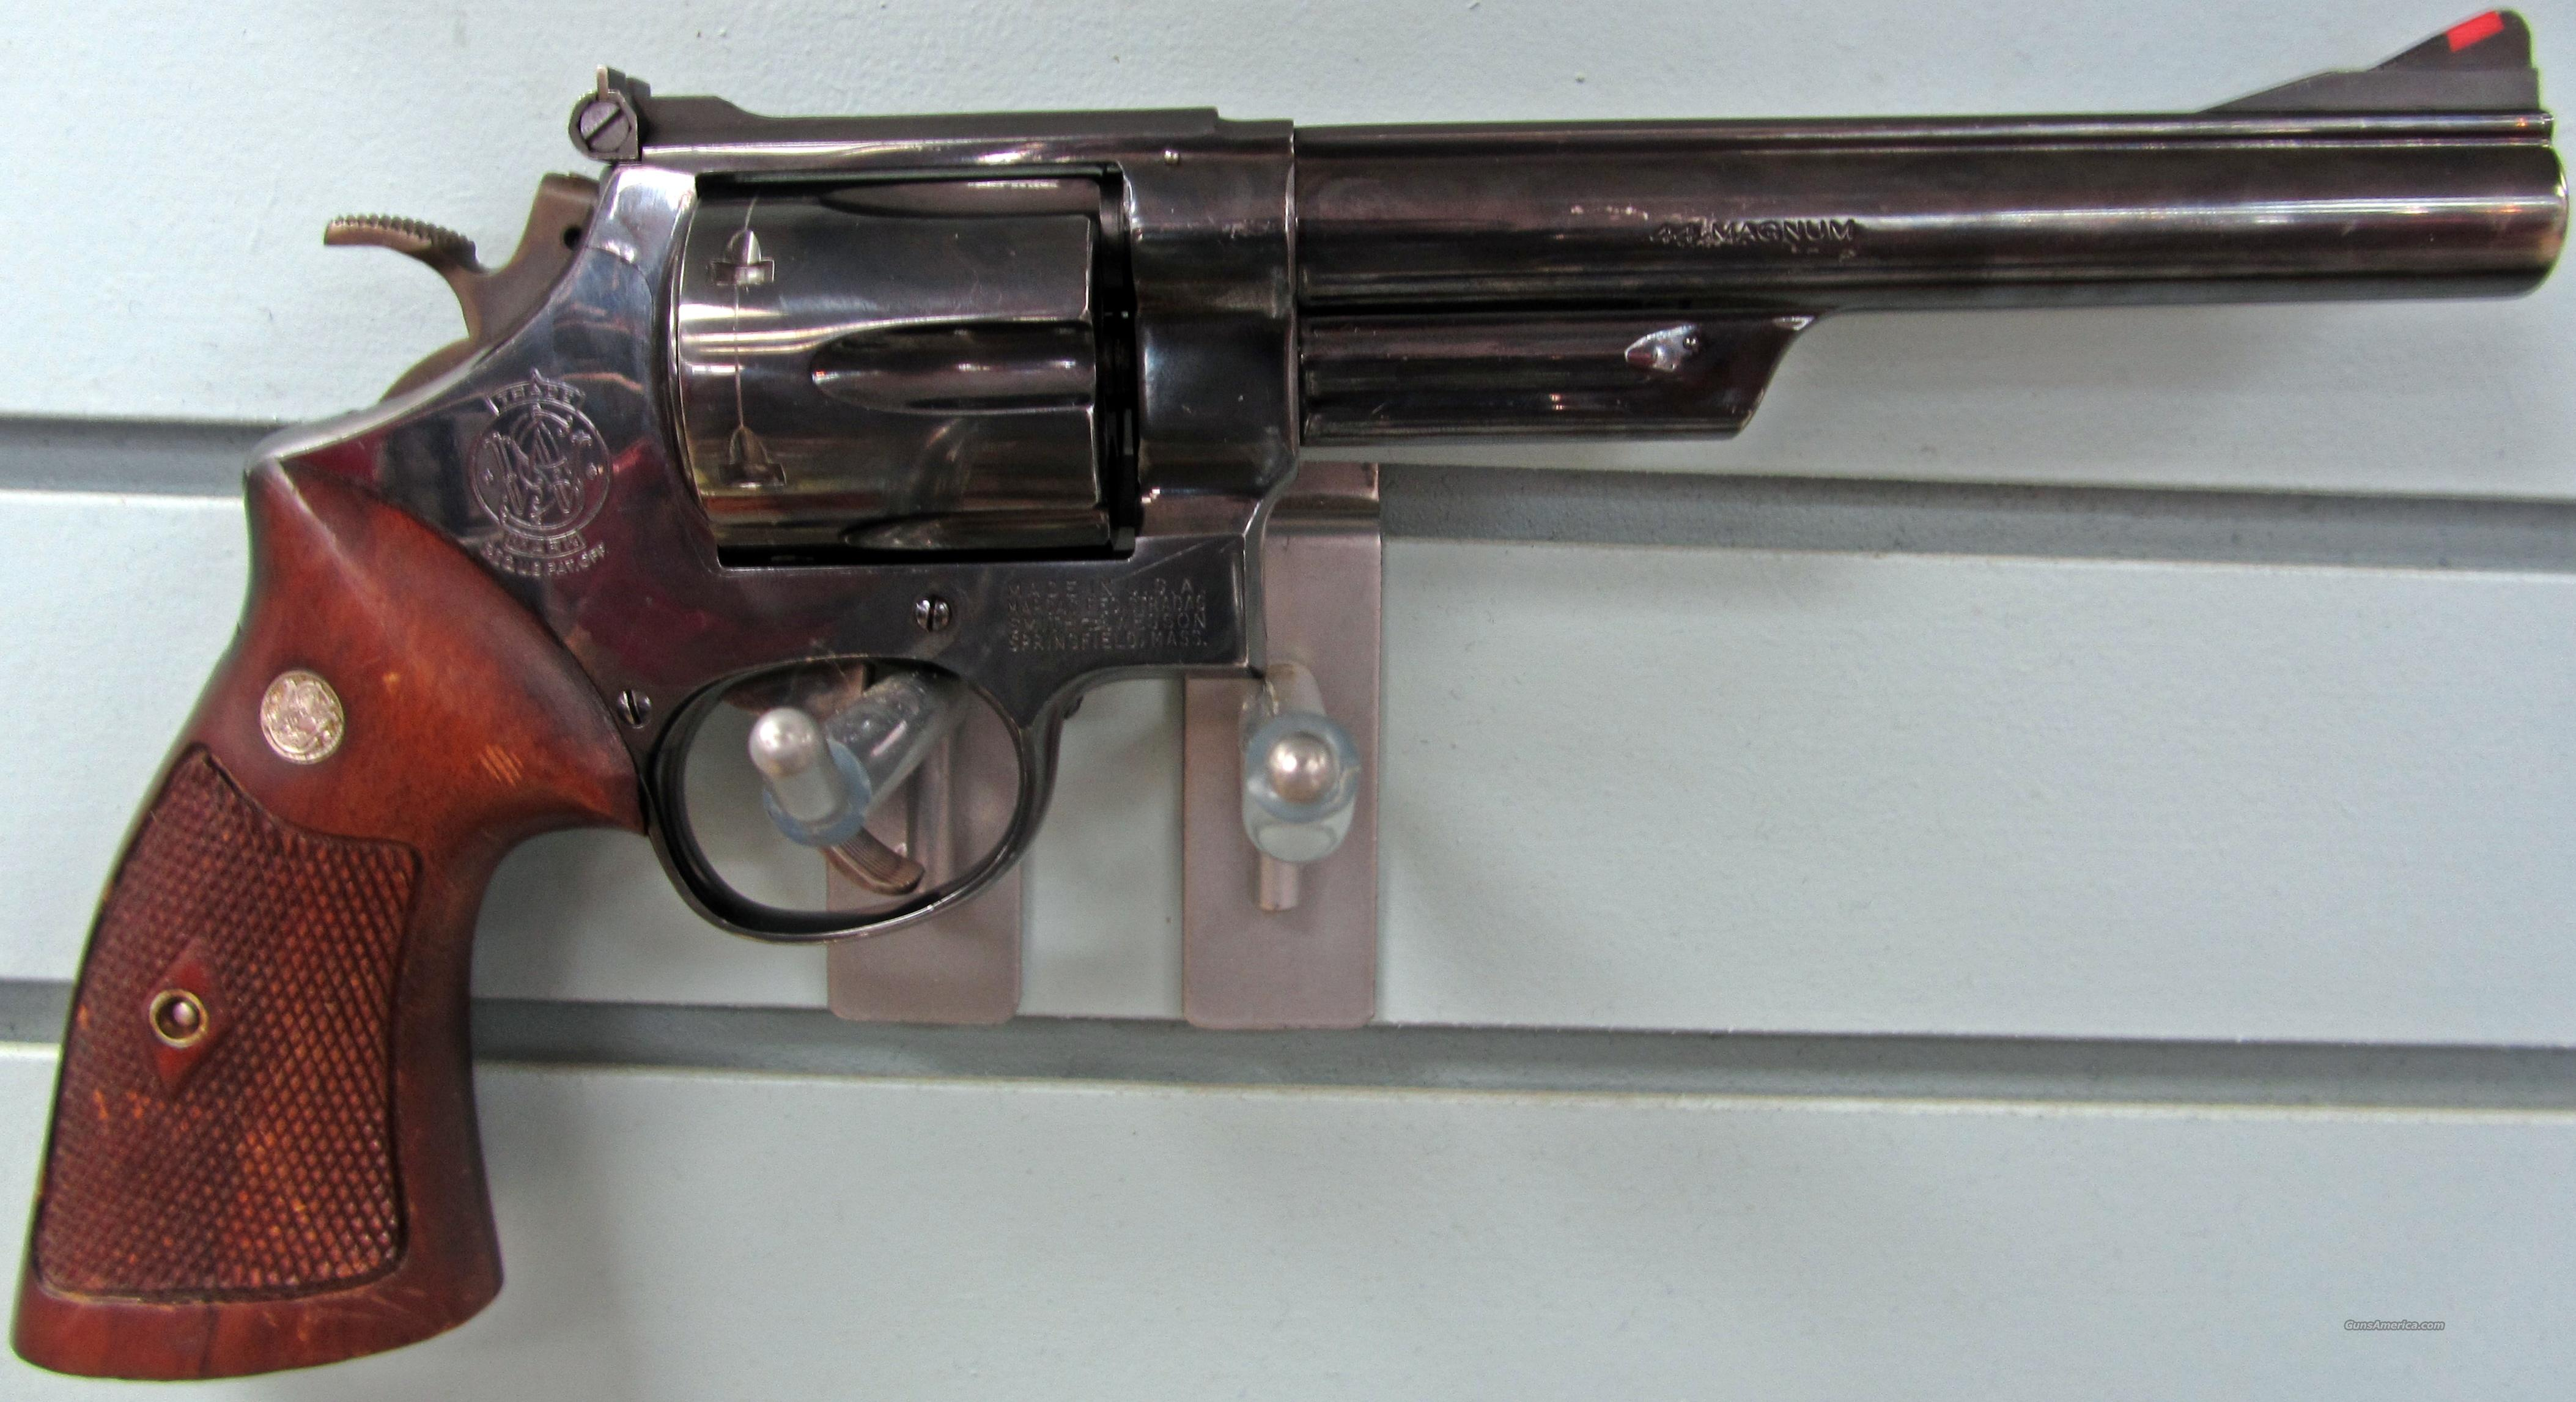 SMITH & WESSON PRE 29 44 MAGNUM  Guns > Pistols > Smith & Wesson Revolvers > Full Frame Revolver